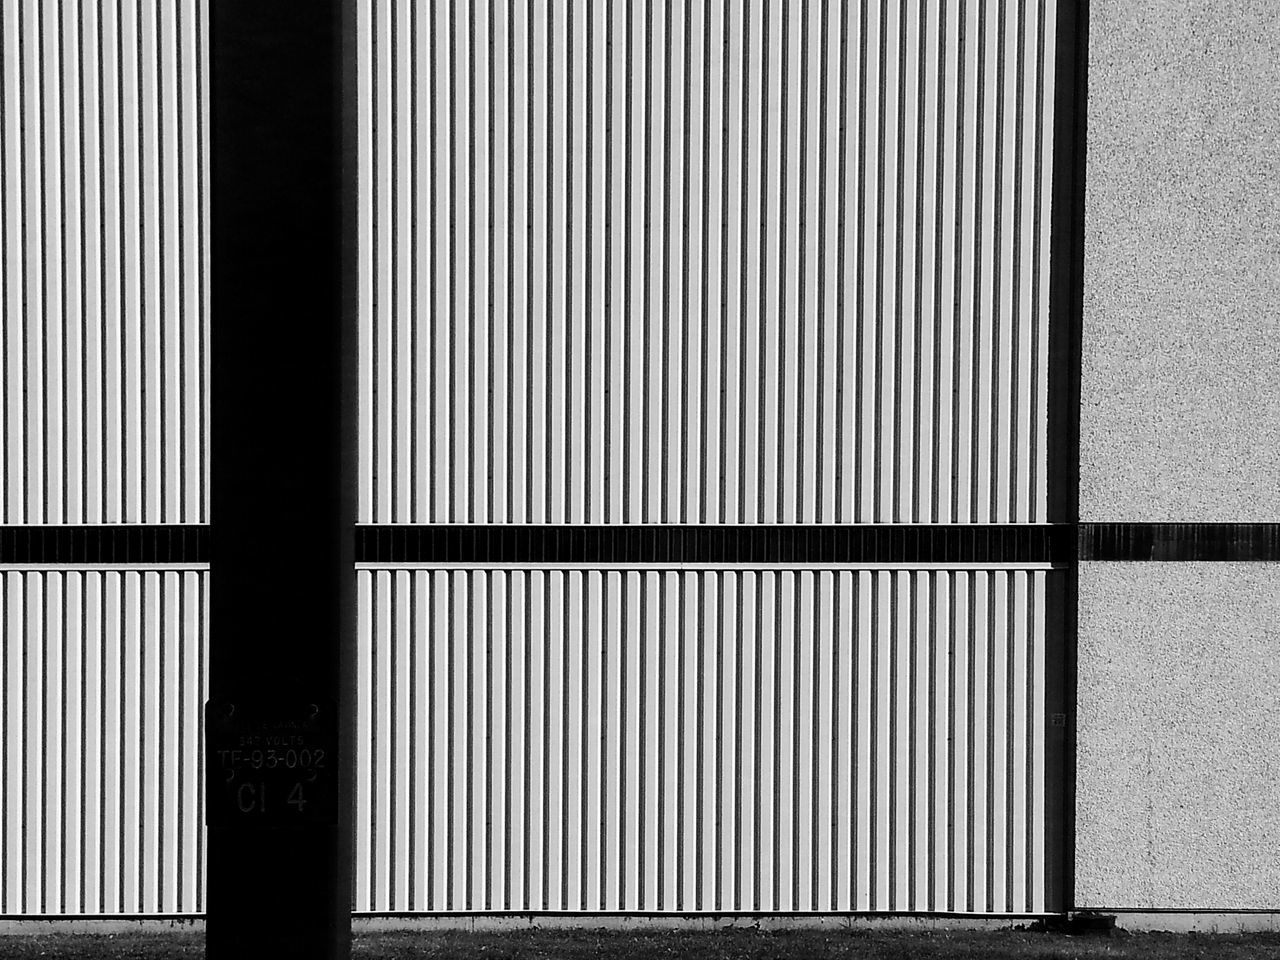 Wall lining... Less Is More ! for Bnw_friday_eyeemchallenge Stripes Straight Lines Vertical Horizontal Pattern Pieces Wall Sections Geometric Architecture Patterns Stripes Lines And Angles Minimalist EyeEm Best Shots - Architecture The Architect - 2016 EyeEm Awards My Favorite Photo Your Design Story The Architect- 2016 Eyeem Awards Fine Art Photography Monochrome Photography Maximum Closeness Minimalist Architecture